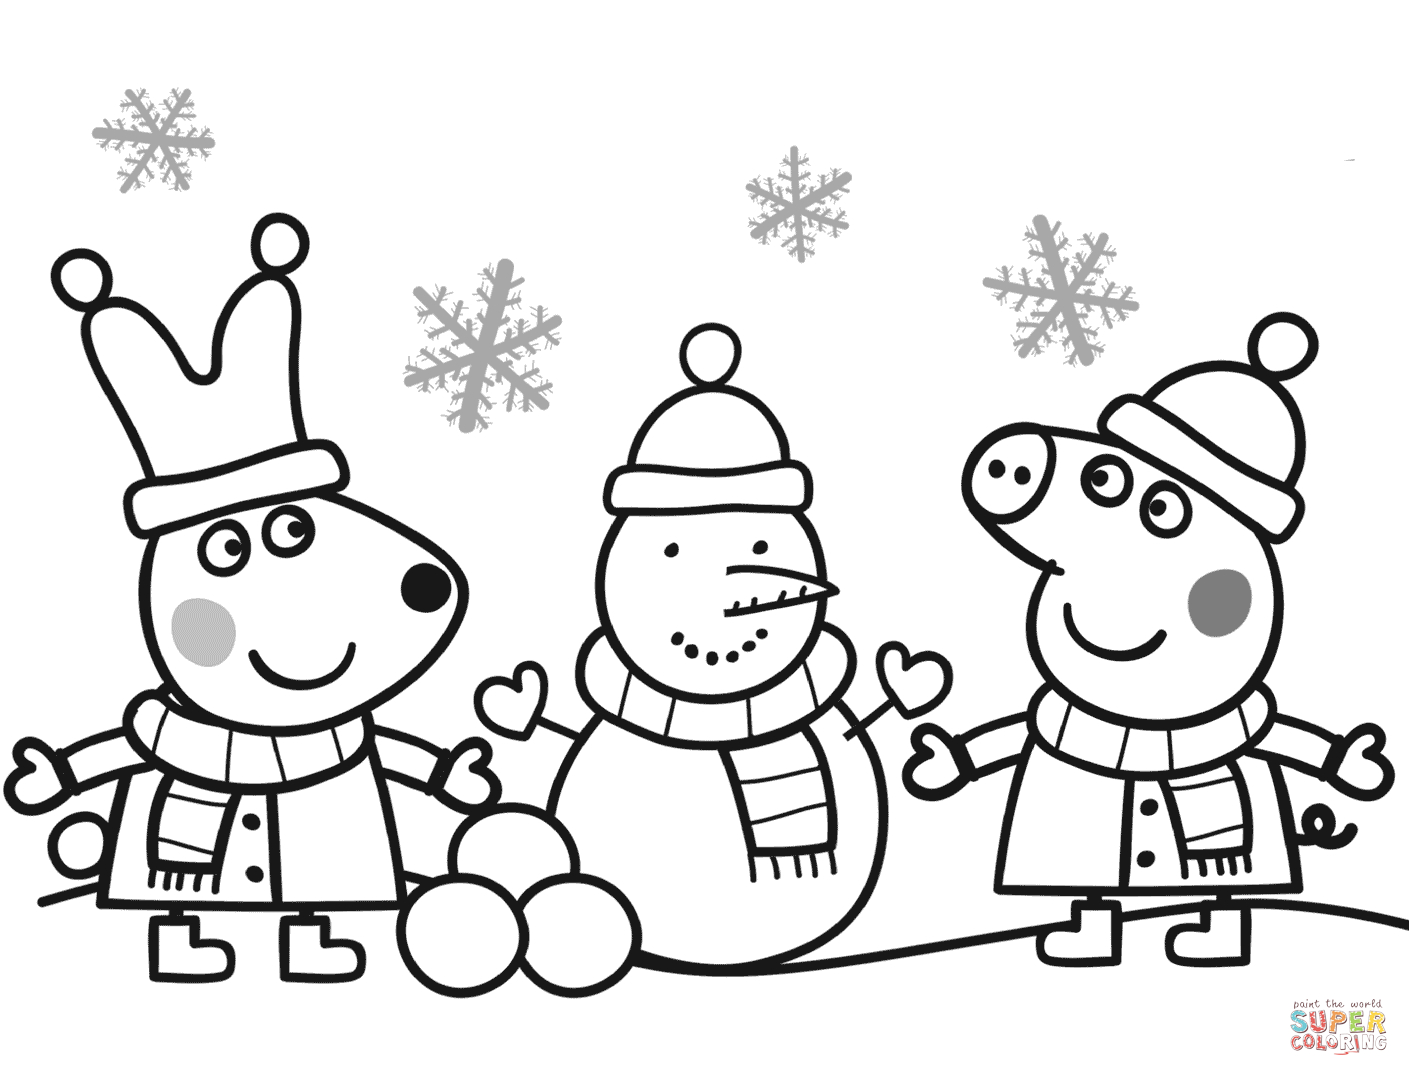 Peppa And Rebecca Are Making Snowman Coloring Page | Free Printable - Pig Coloring Sheets Free Printable